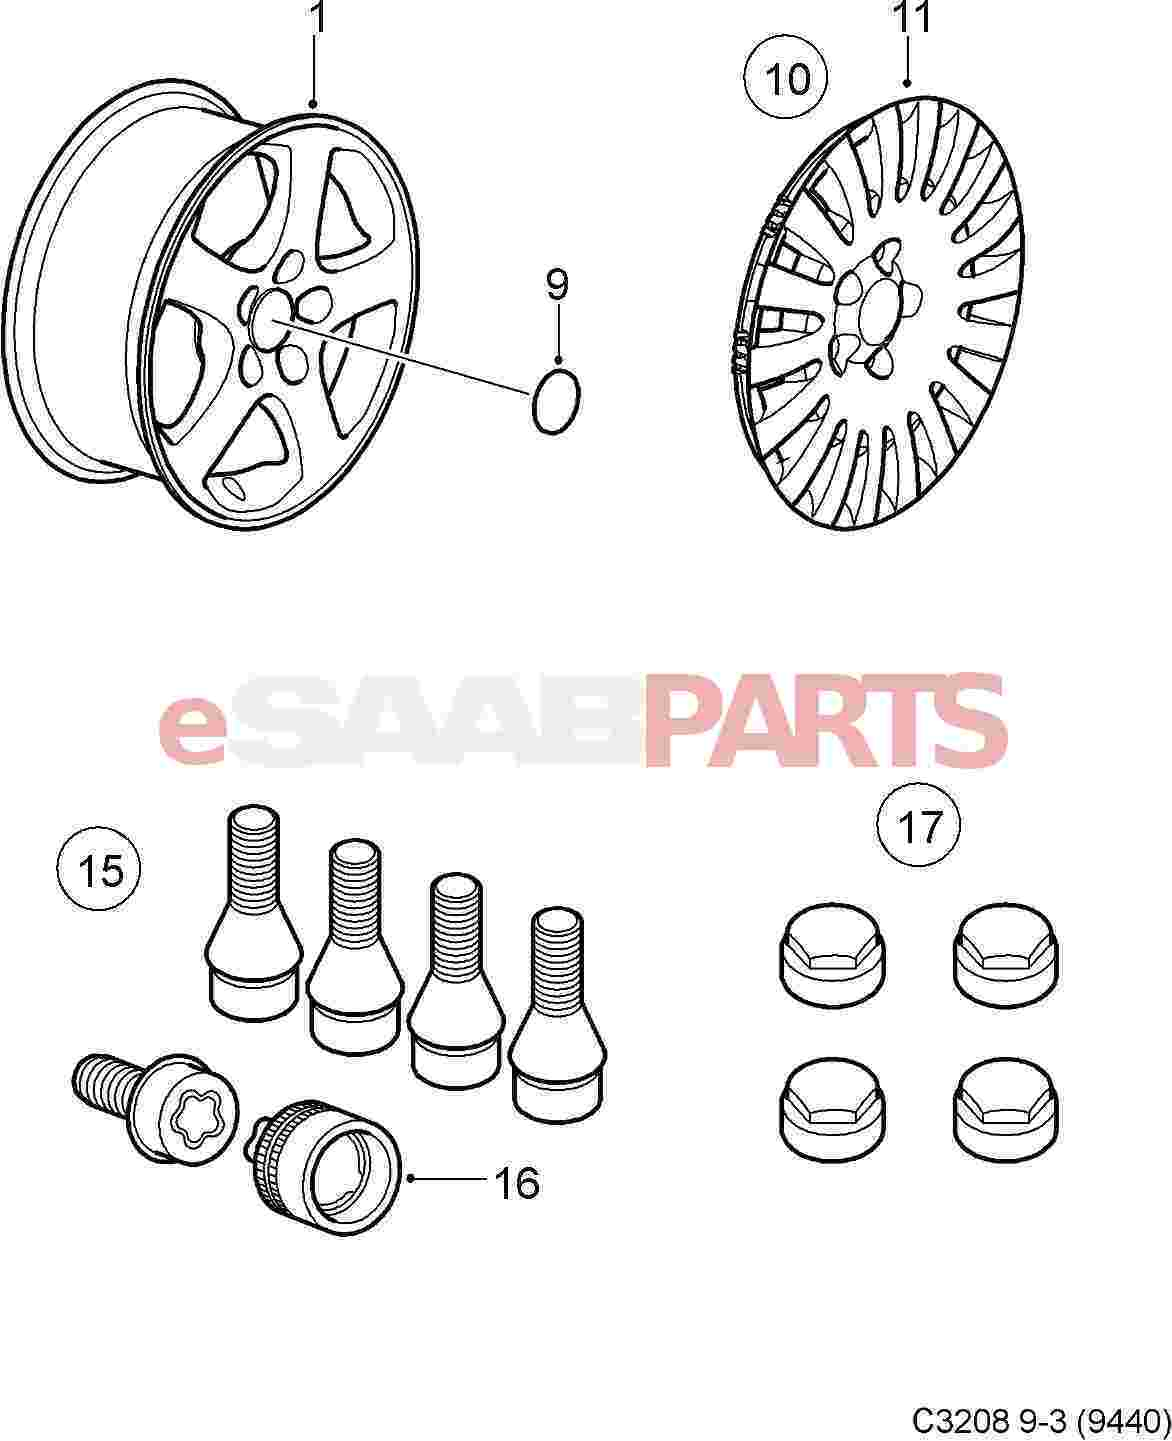 tags: #saab 9 2x engine#2005 saab 9 2x#saab 9 2x stance#saab 9 2x sedan#saab  9 2x brakes#saab 9 2x turbo#springs on saab 9 2x#2006 saab 9 2x#2005 saab 9  2x